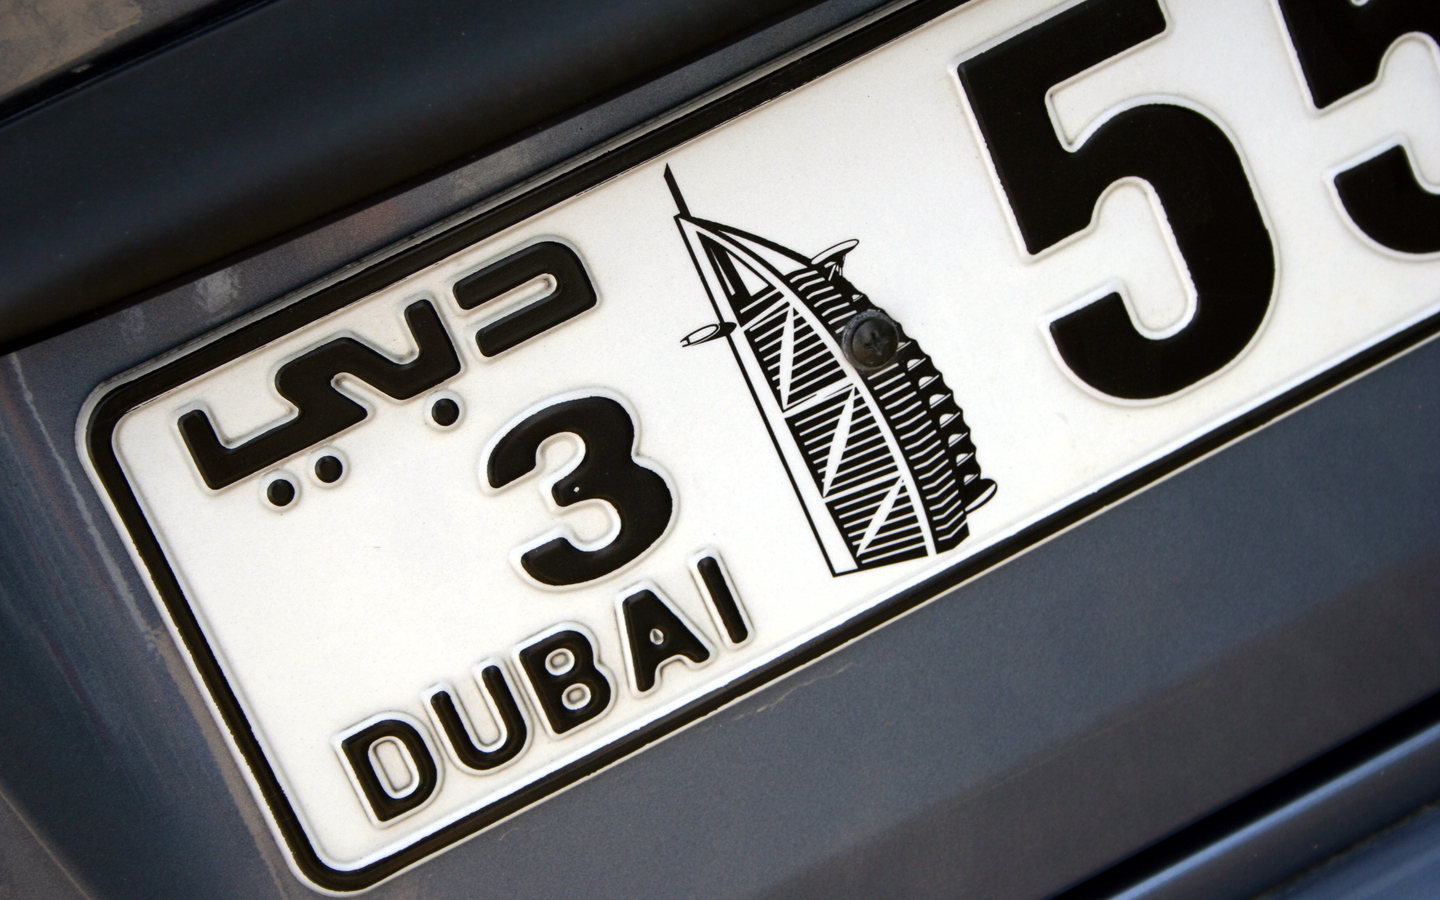 dubai car number plate